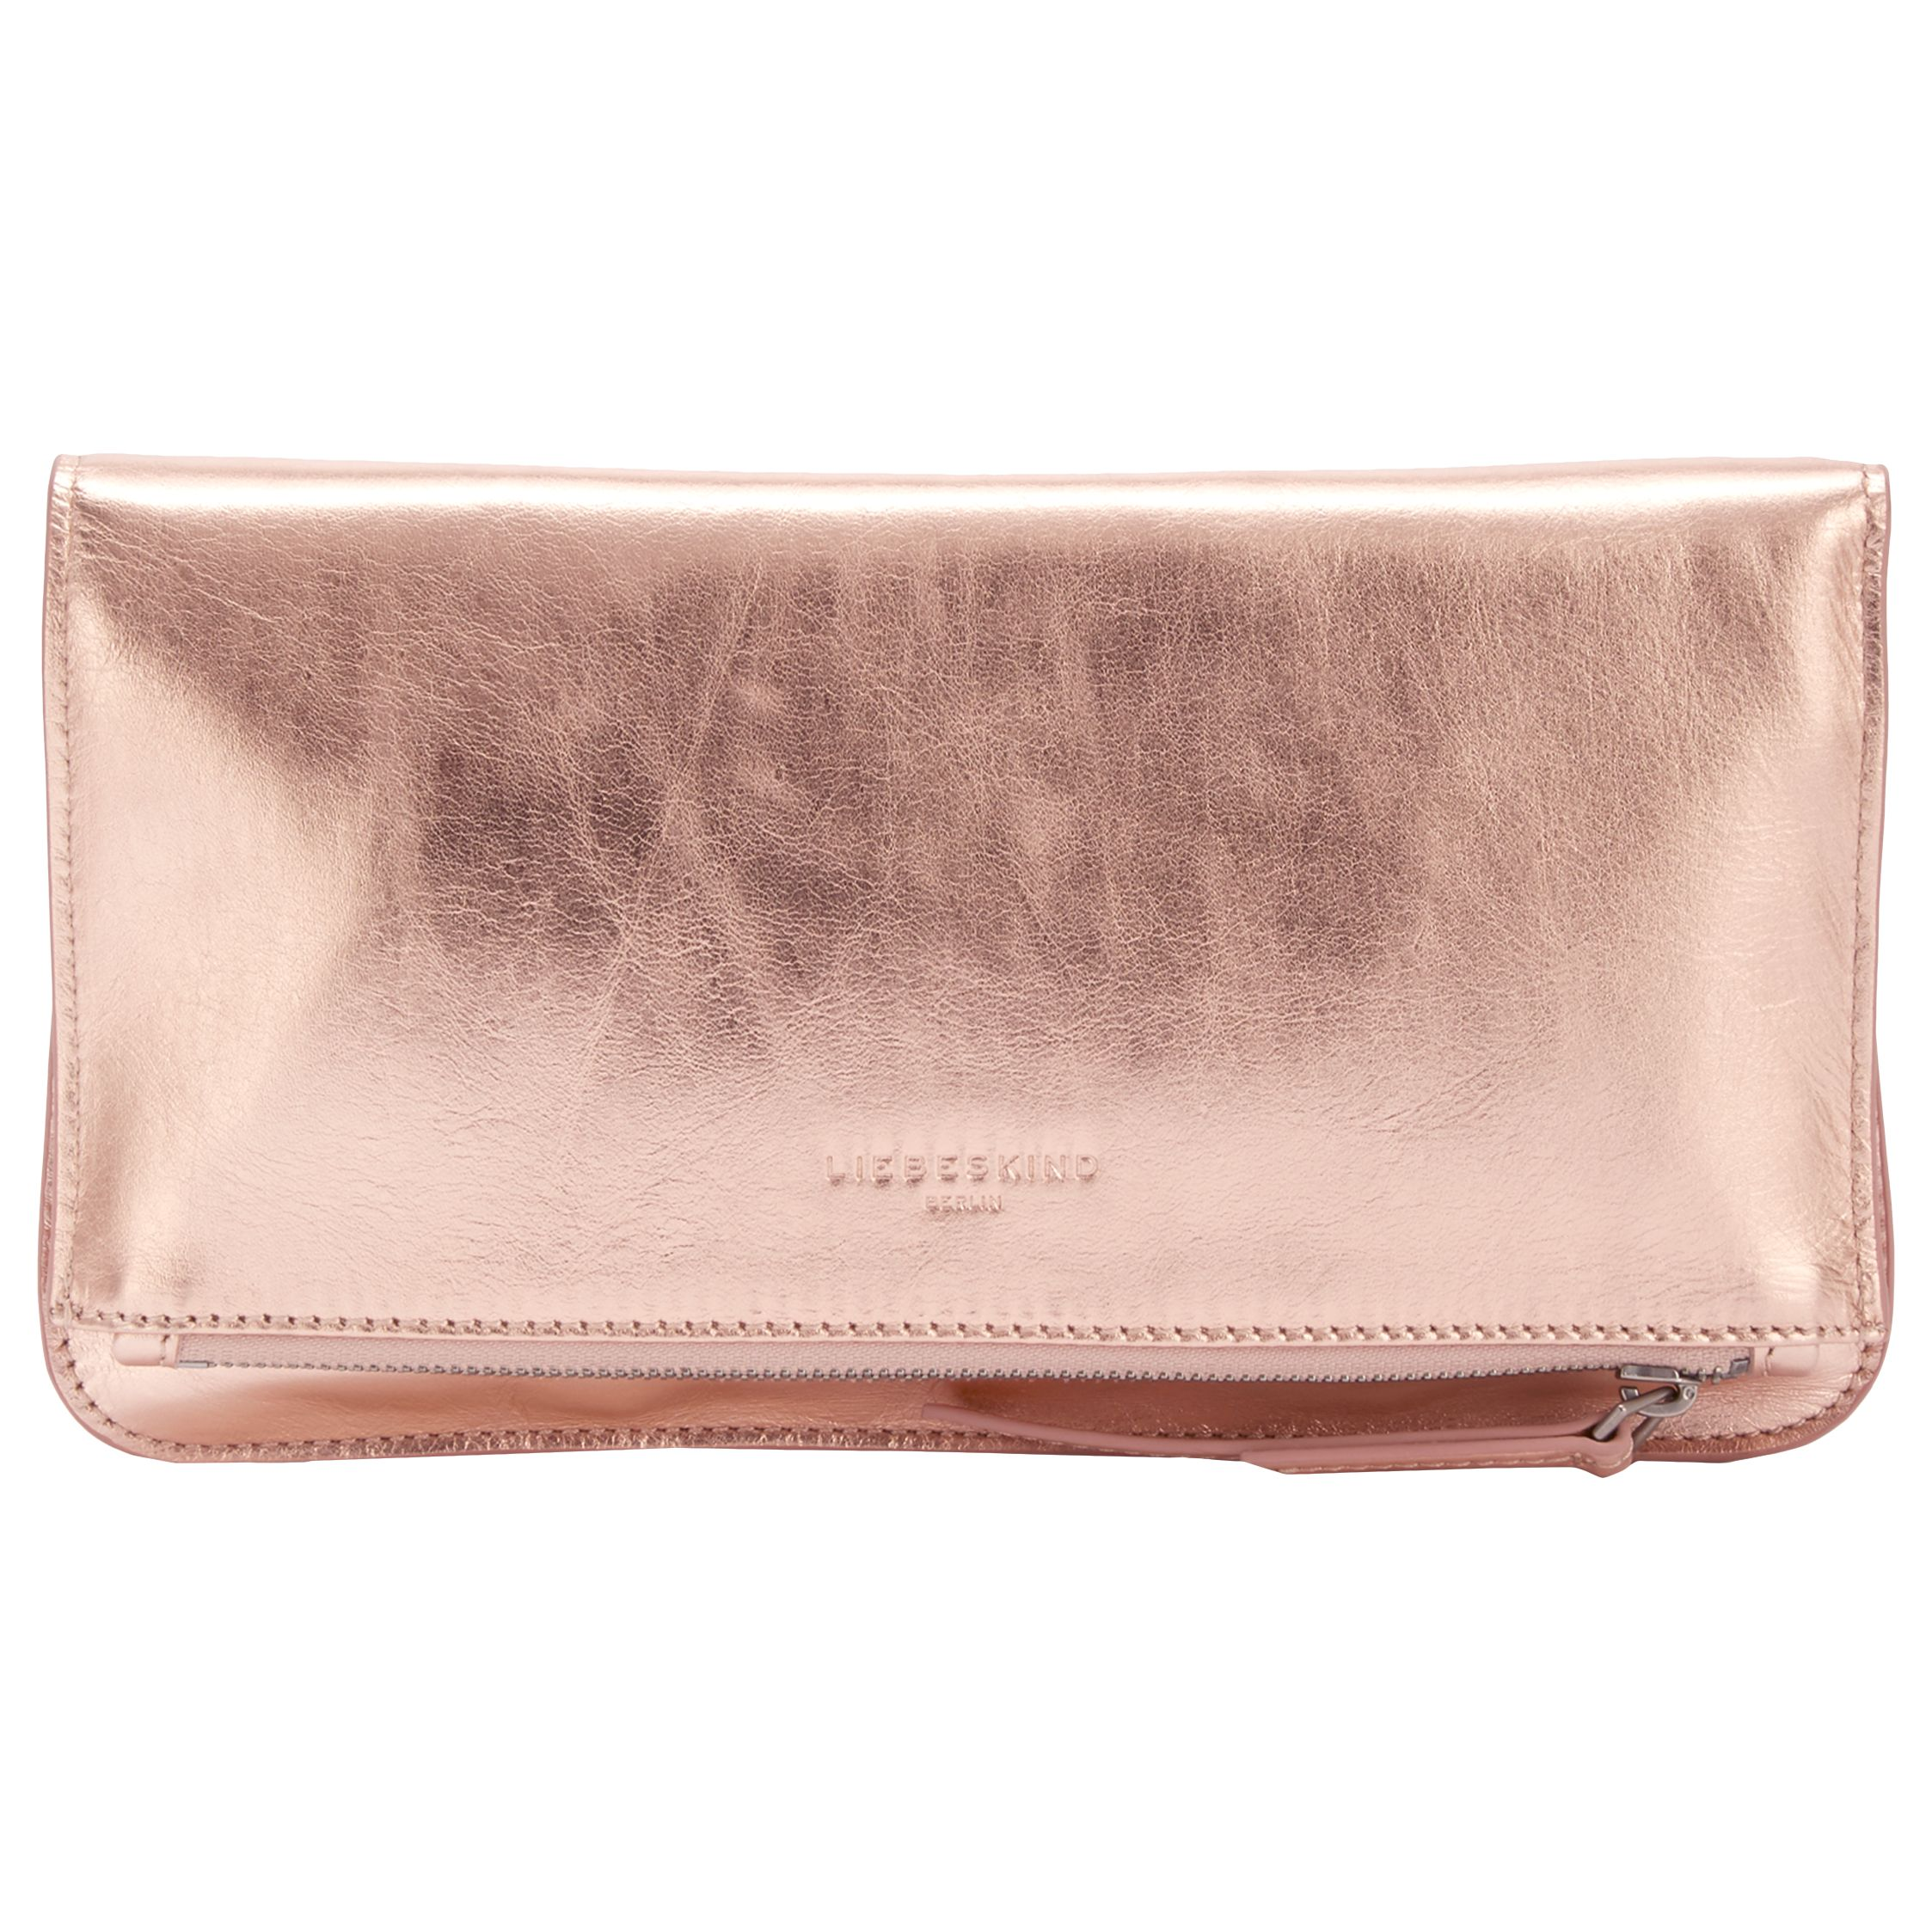 Liebeskind Liebeskind Aloe F7 Leather Clutch Bag, Rose Gold